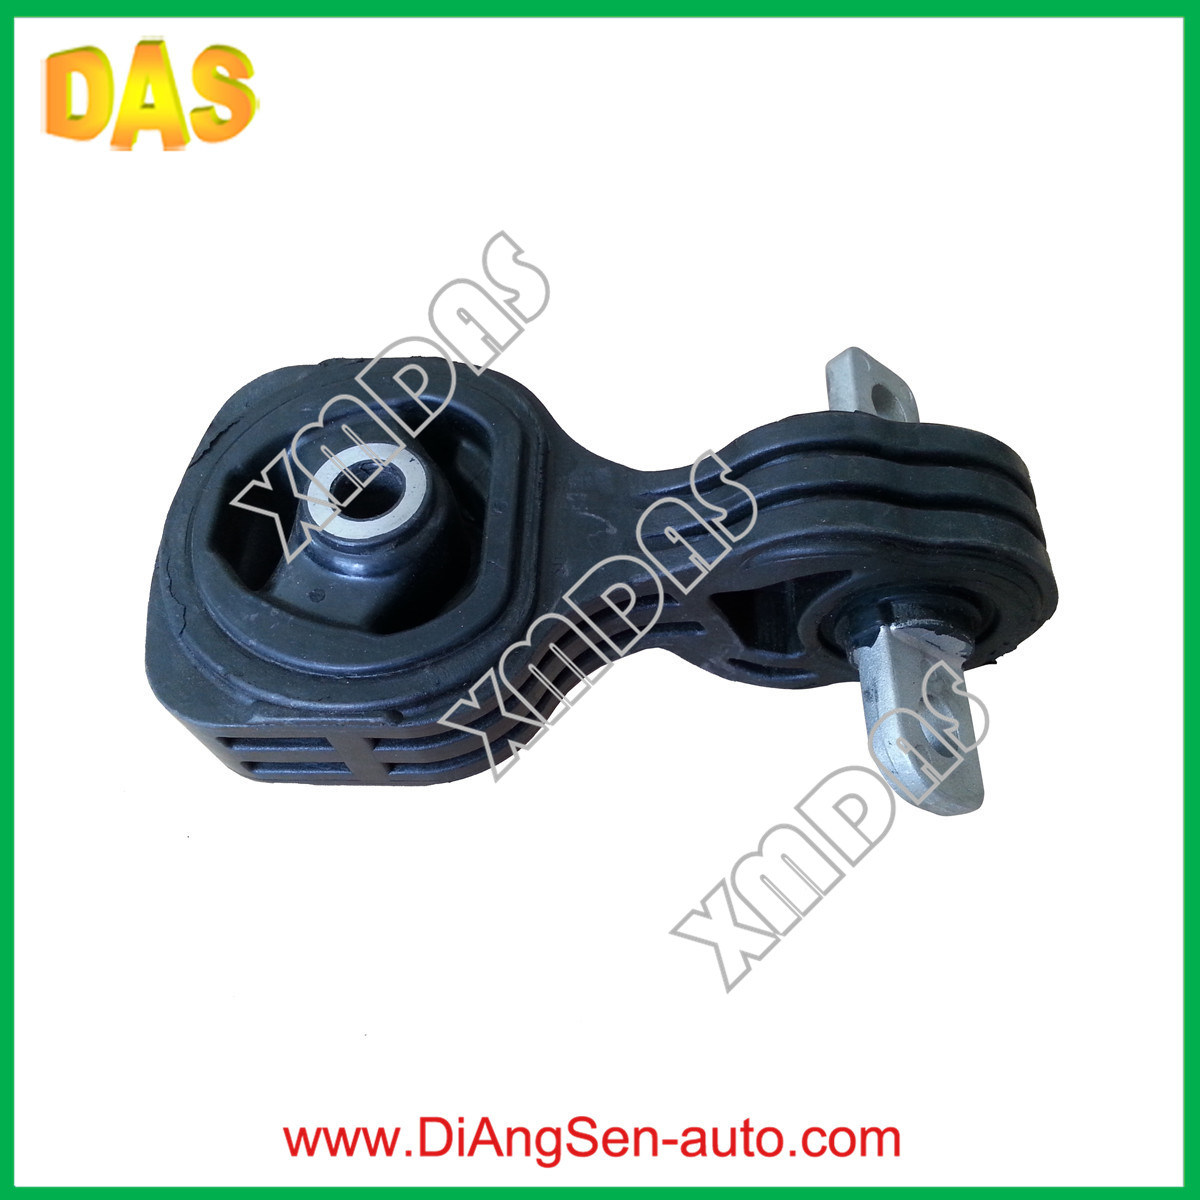 Car/Auto Engine Spare Parts Rubber Mounting for Honda Civic (50880-SNA-A81)  | IBUYautoparts com